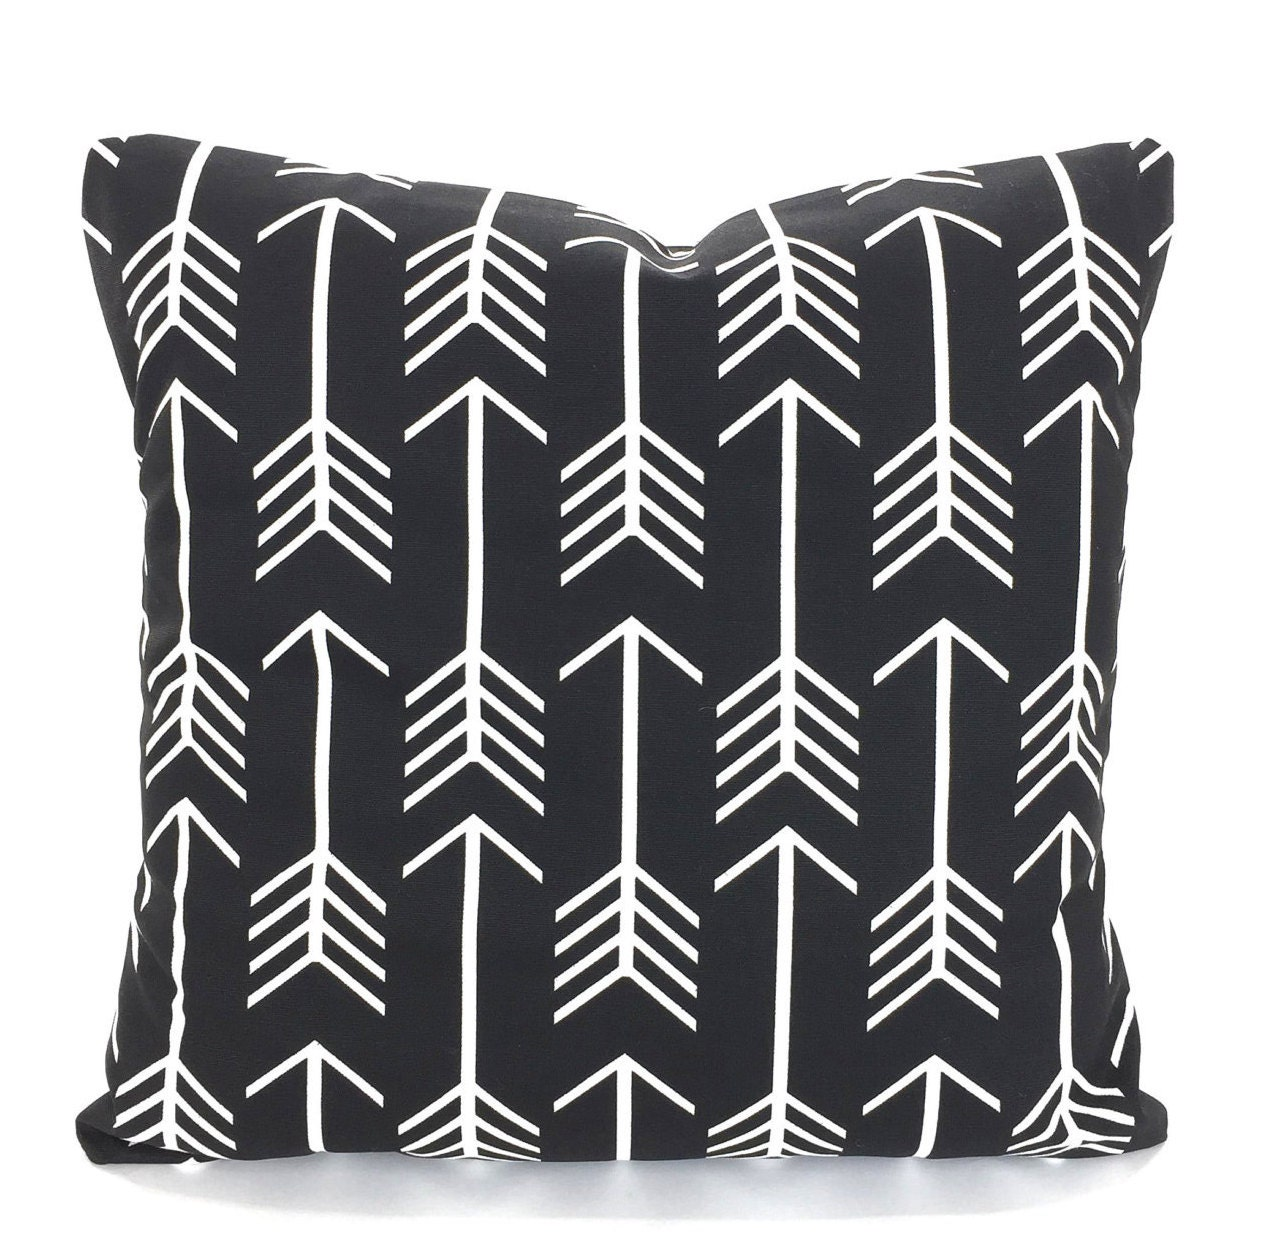 Black White Pillow Cover Decorative Throw Pillows Cushions Black And White Arrow Euro Sham Couch Bed Sofa One Or More All Sizes